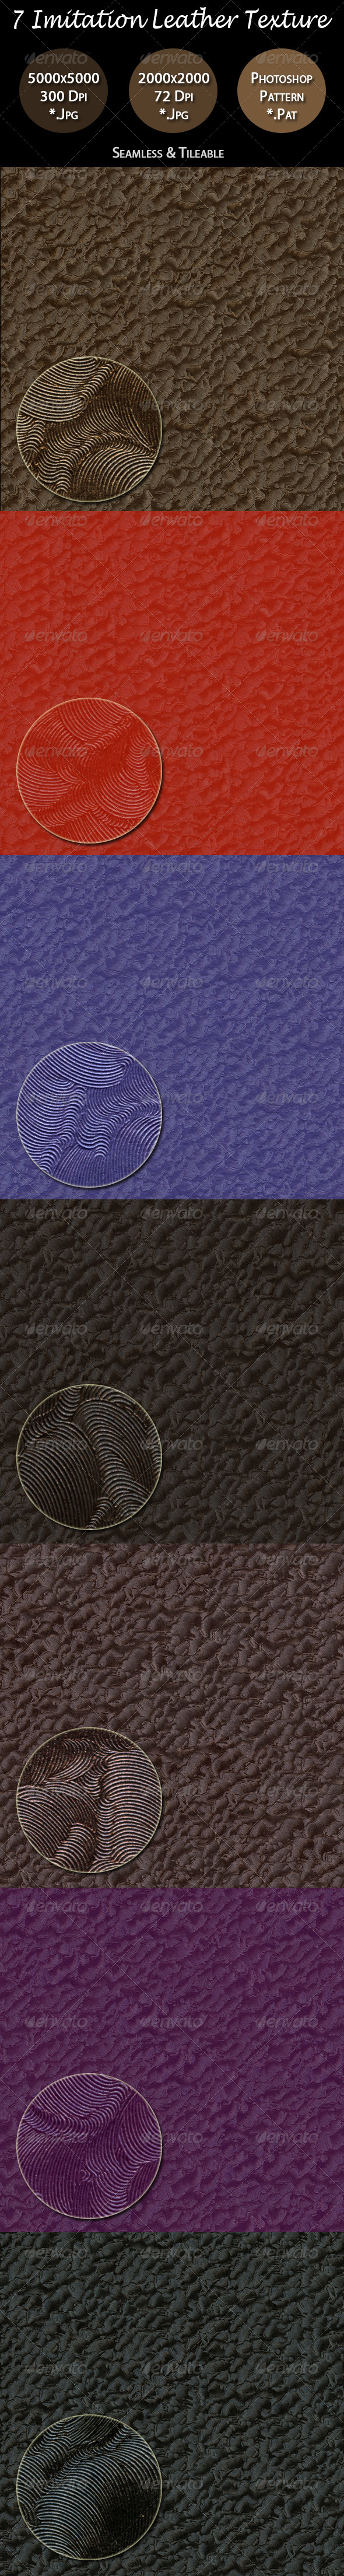 GraphicRiver 7 Imitation Leather Texture Pack 4491998